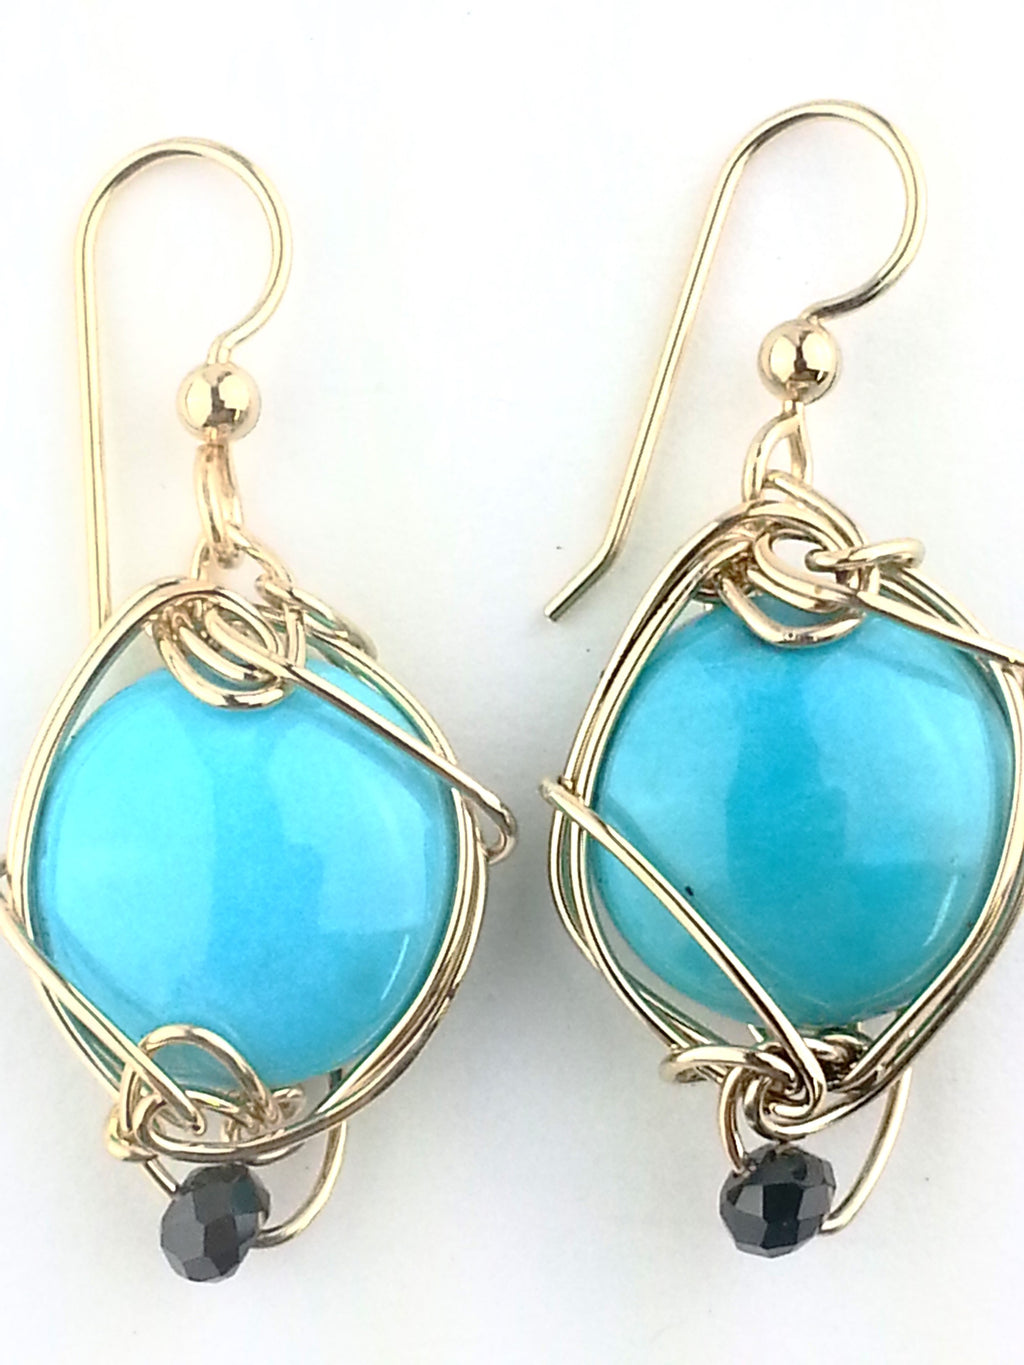 e Sleeping Beauty turquoise is a brilliant blue accented with faceted Black spinel. which creates a stunning, down right pretty look.   It is such a treasure to have a beautiful classic pair of American Turquoise in your collection.  Their versatility is endless as they are perfect with your favorite faded blue jeans or your finest formal.  When I travel, my turquoise are always with me!  Size 2.5 cm x 1.8 w cm Total Length with the ear wires 4.0 cm